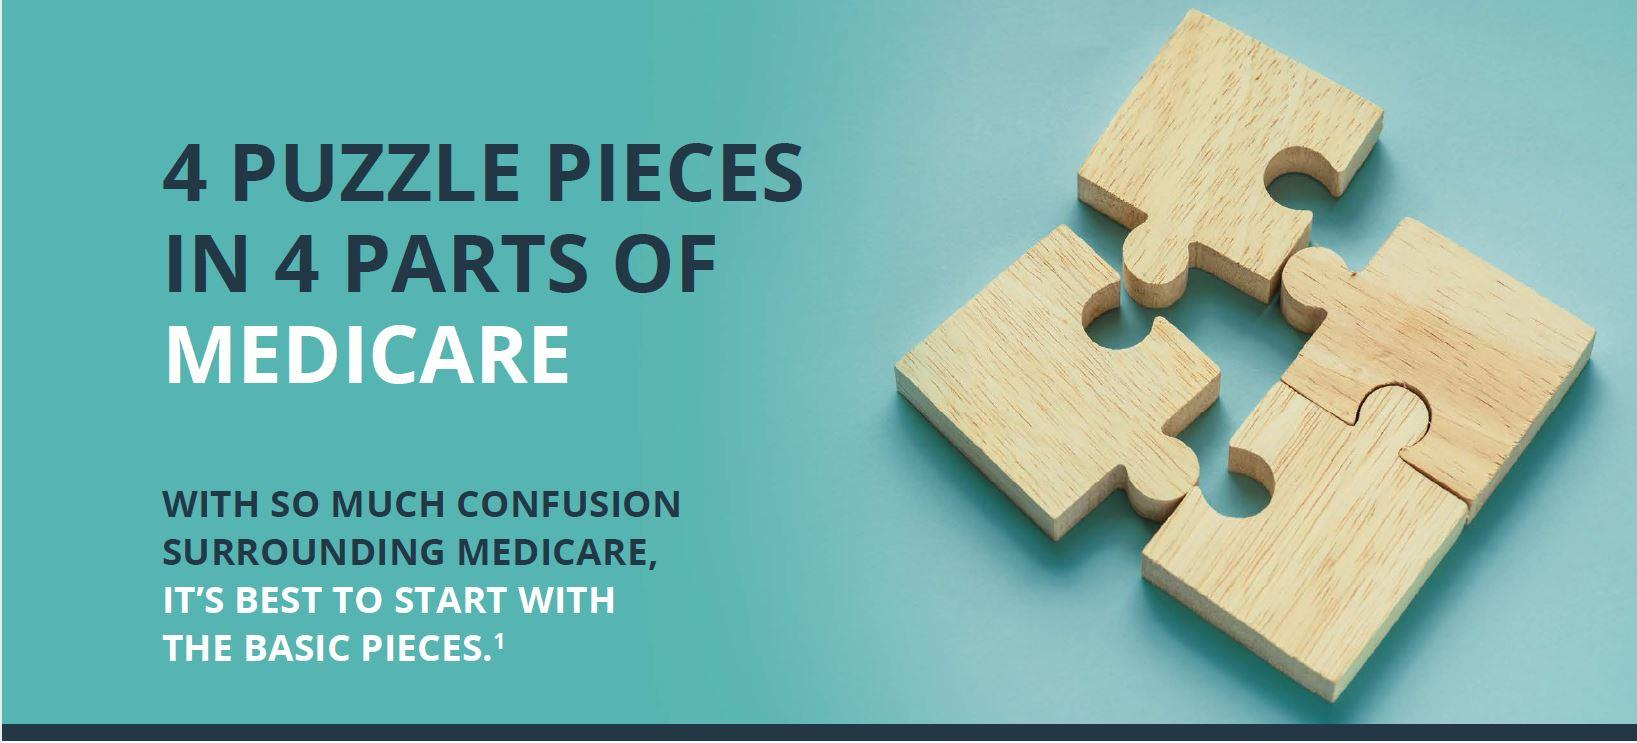 4 Puzzle Pieces in 4 Parts of Medicare  Thumbnail